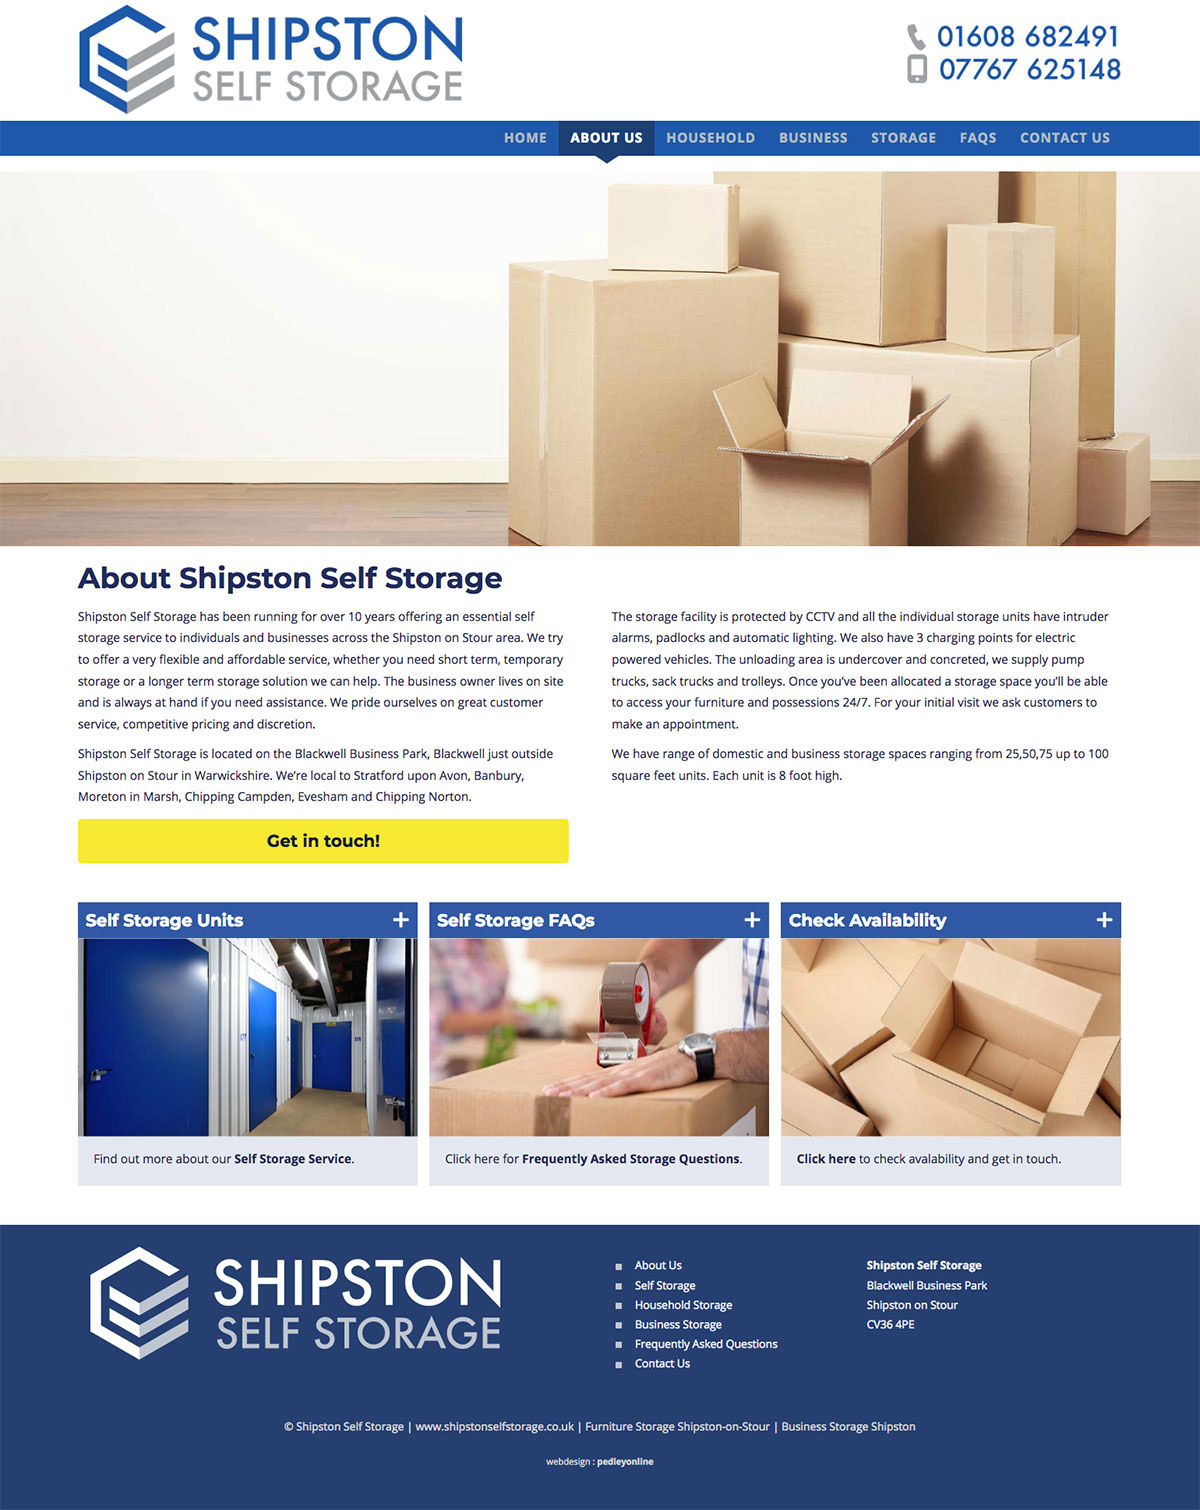 New website for Shipston Self Storage